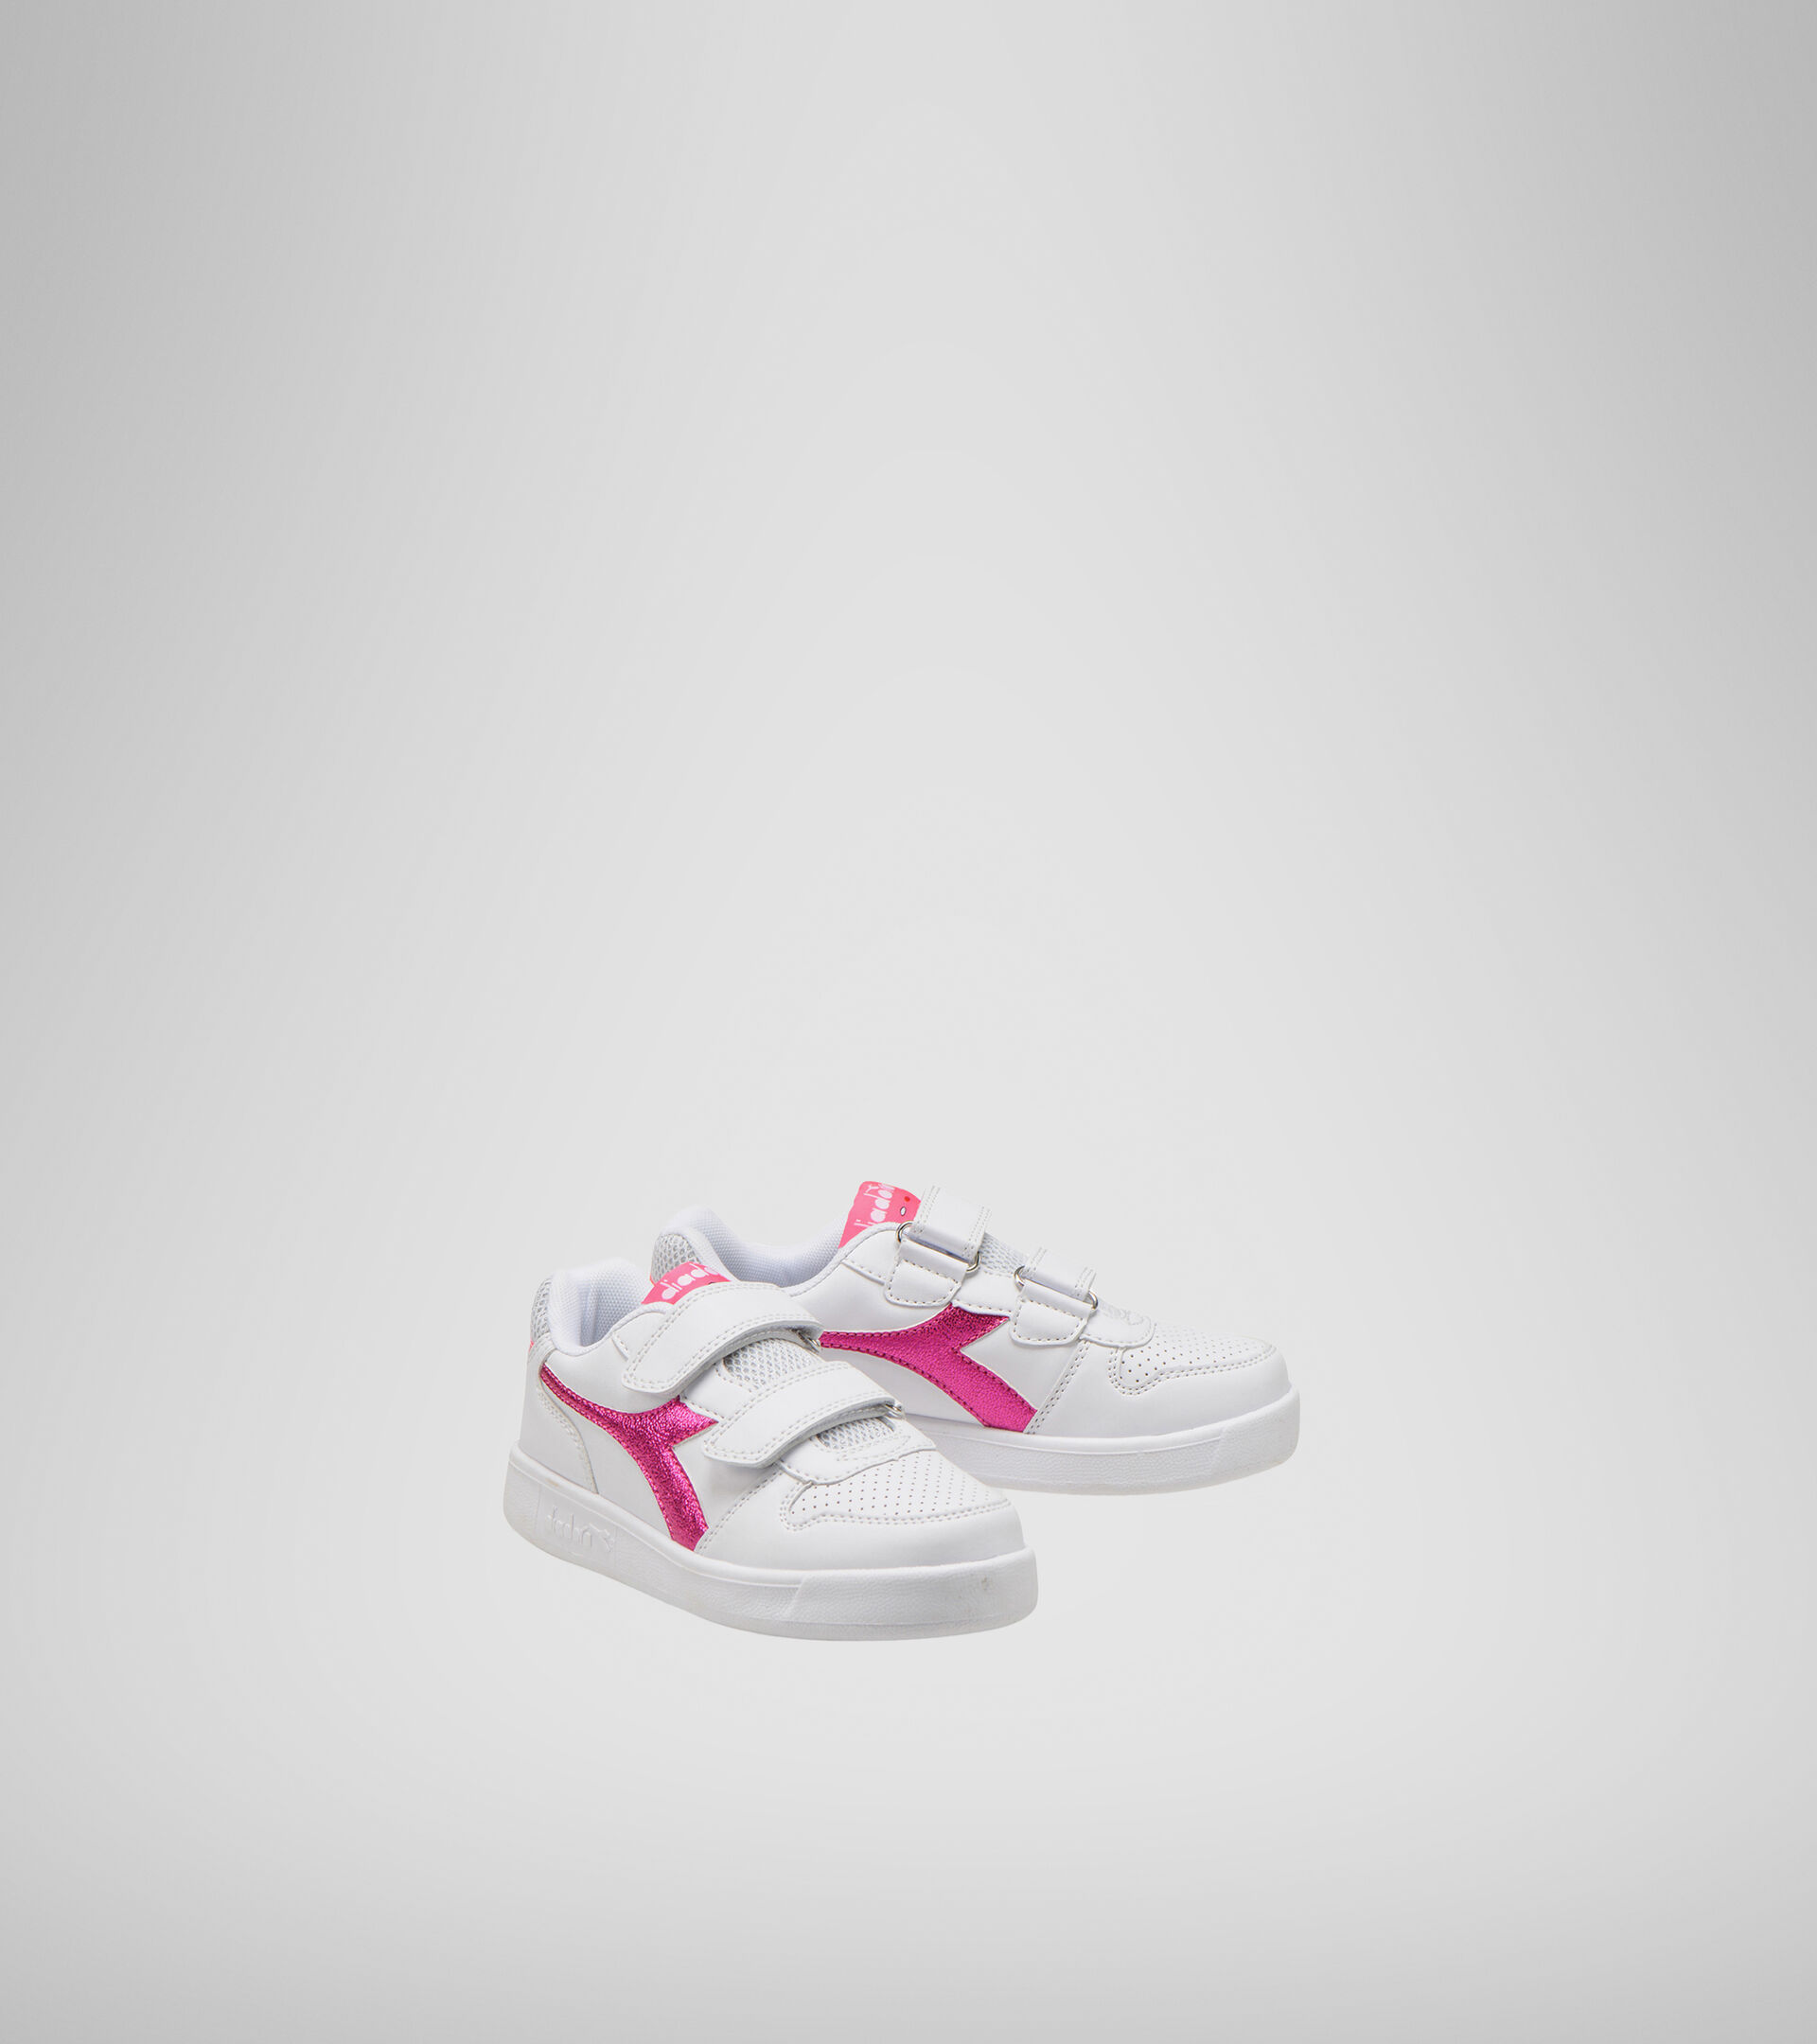 Sports shoes - Kids 4-8 years PLAYGROUND PS GIRL WHITE/PINK FLUO - Diadora